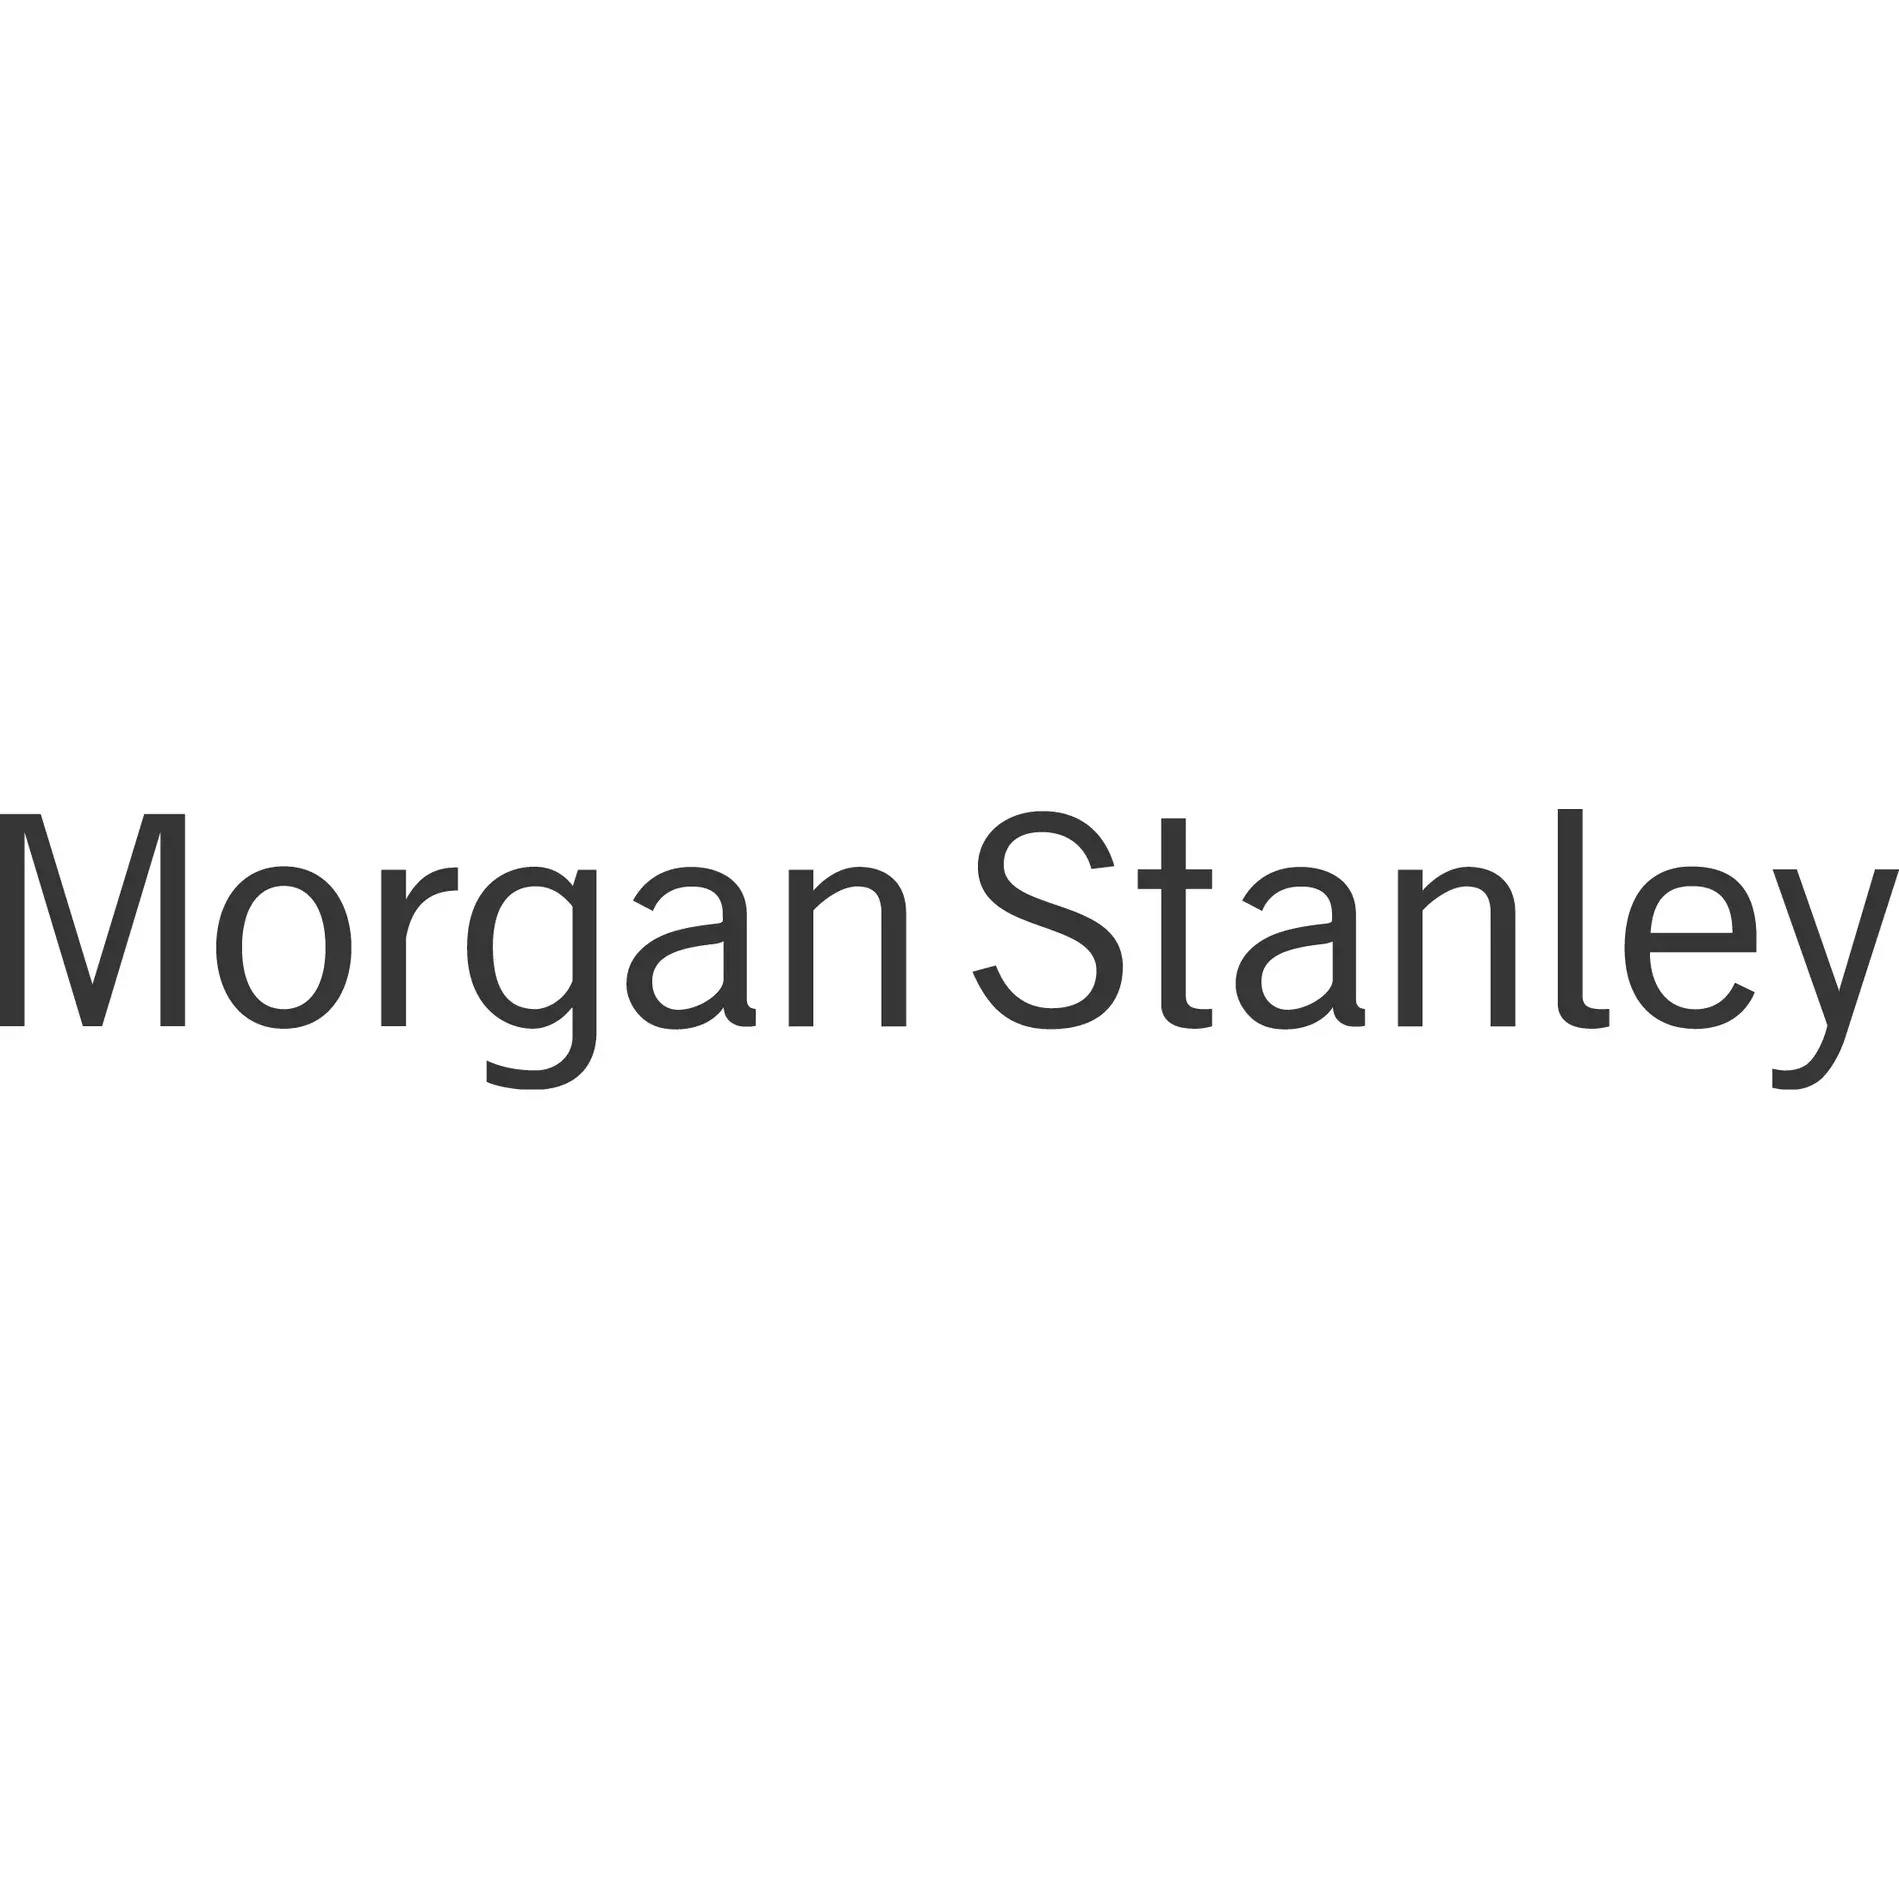 Shields Mauro Group - Morgan Stanley